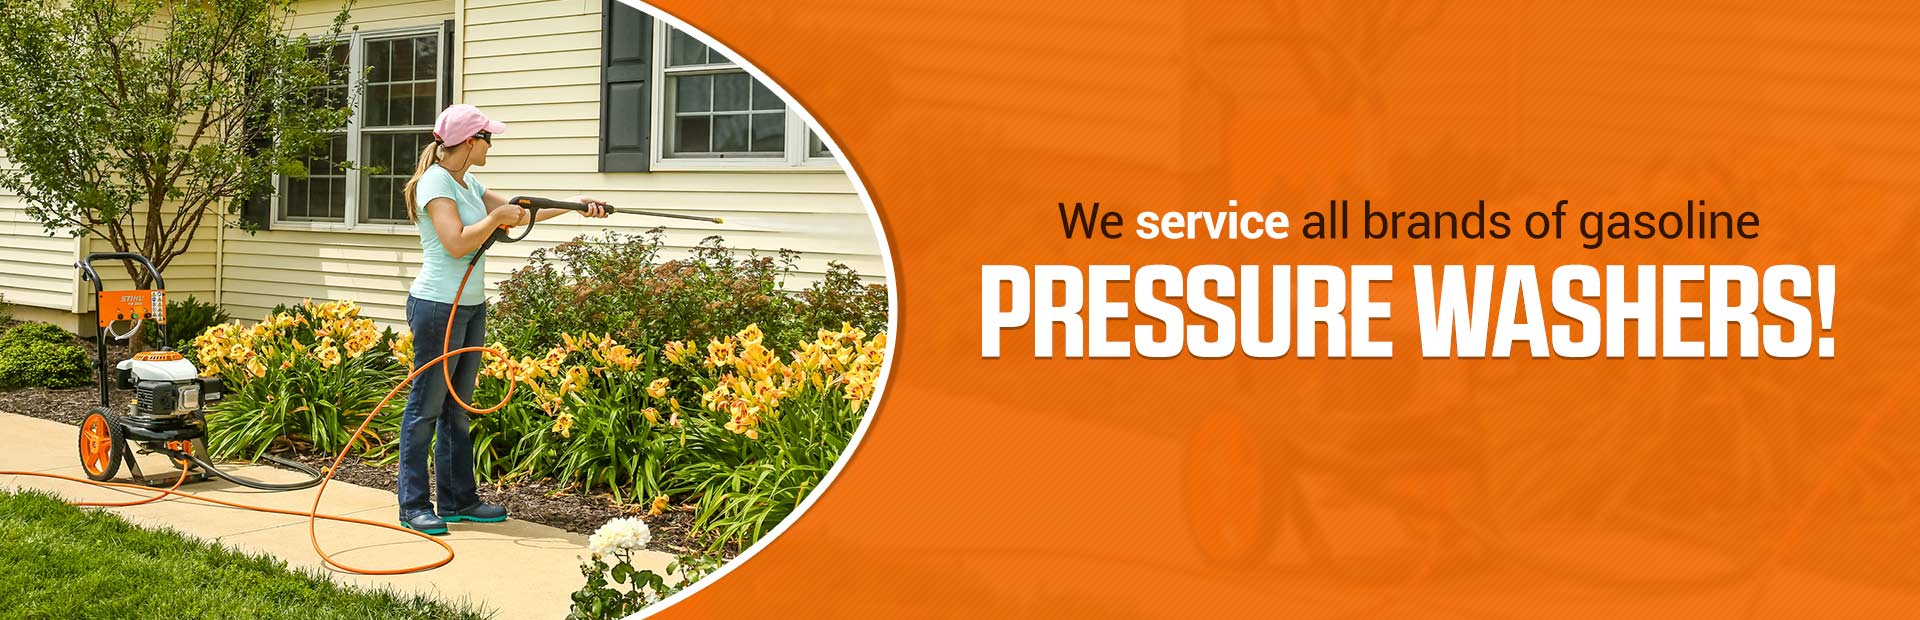 We service all brands of gasoline pressure washers!